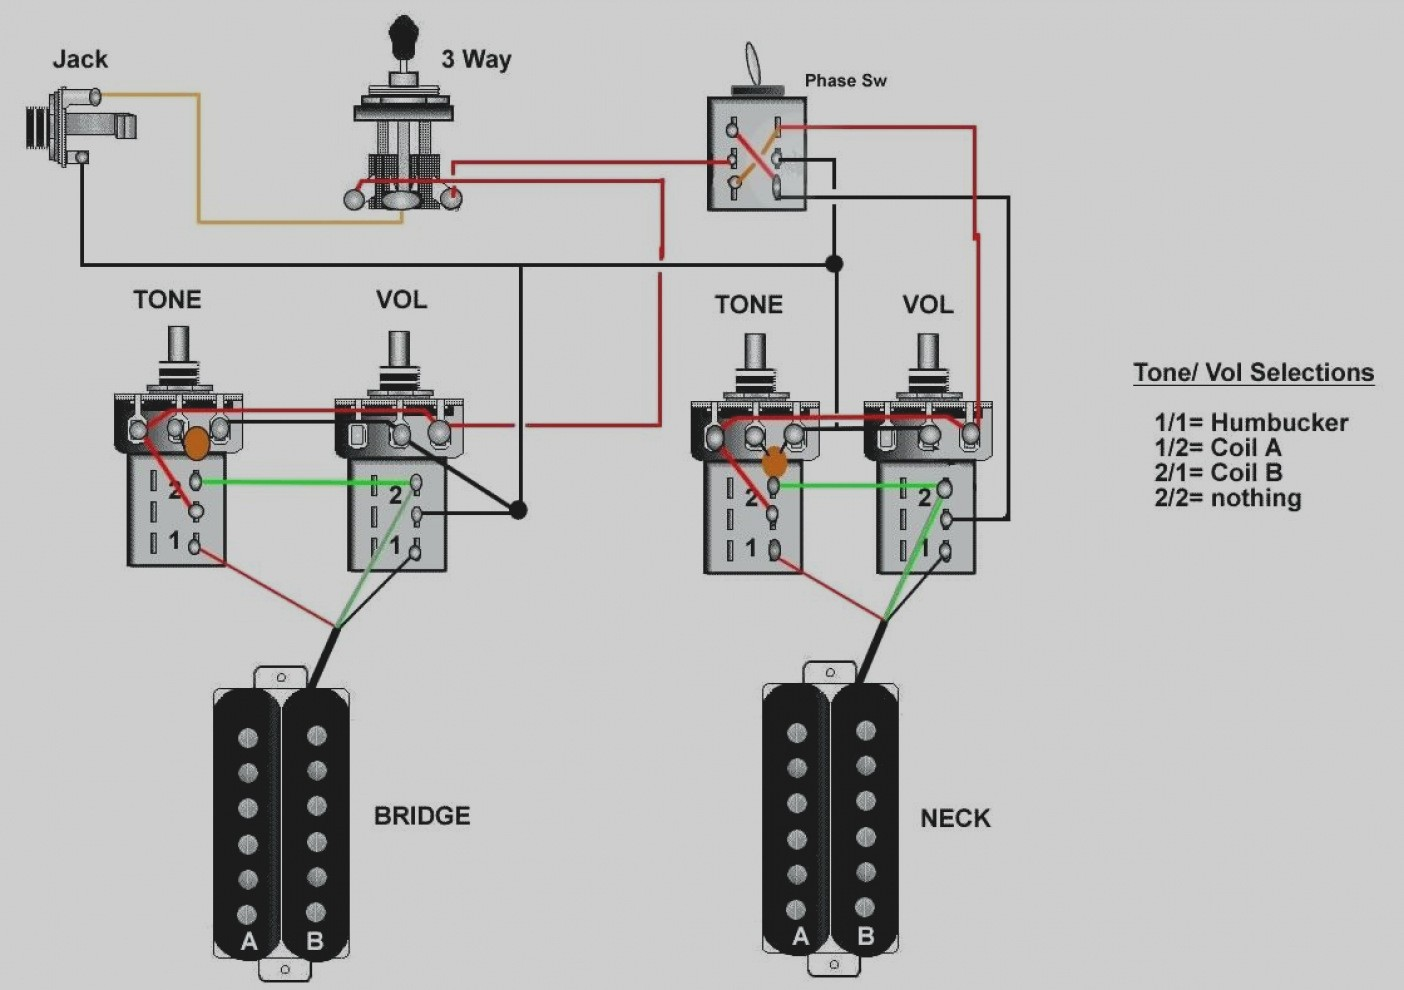 Hss Wiring Diagram 1 Tone Pot. Hss Wiring 5-way Switch